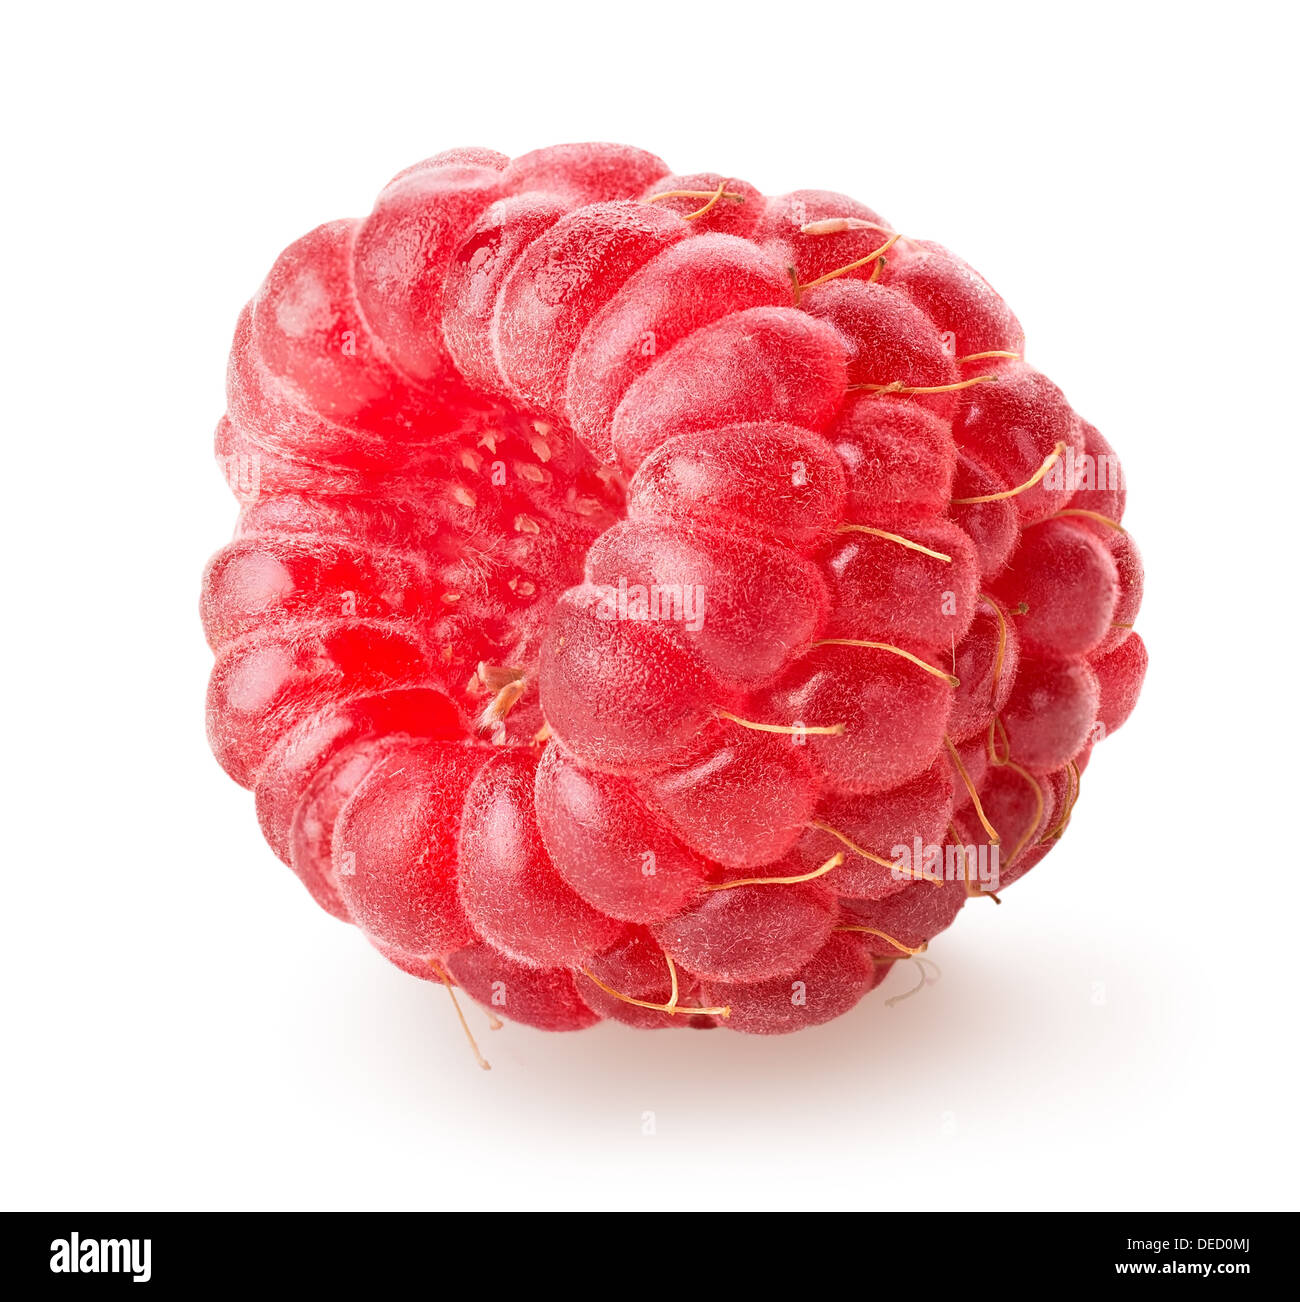 Juicy raspberry isolated on a white background - Stock Image